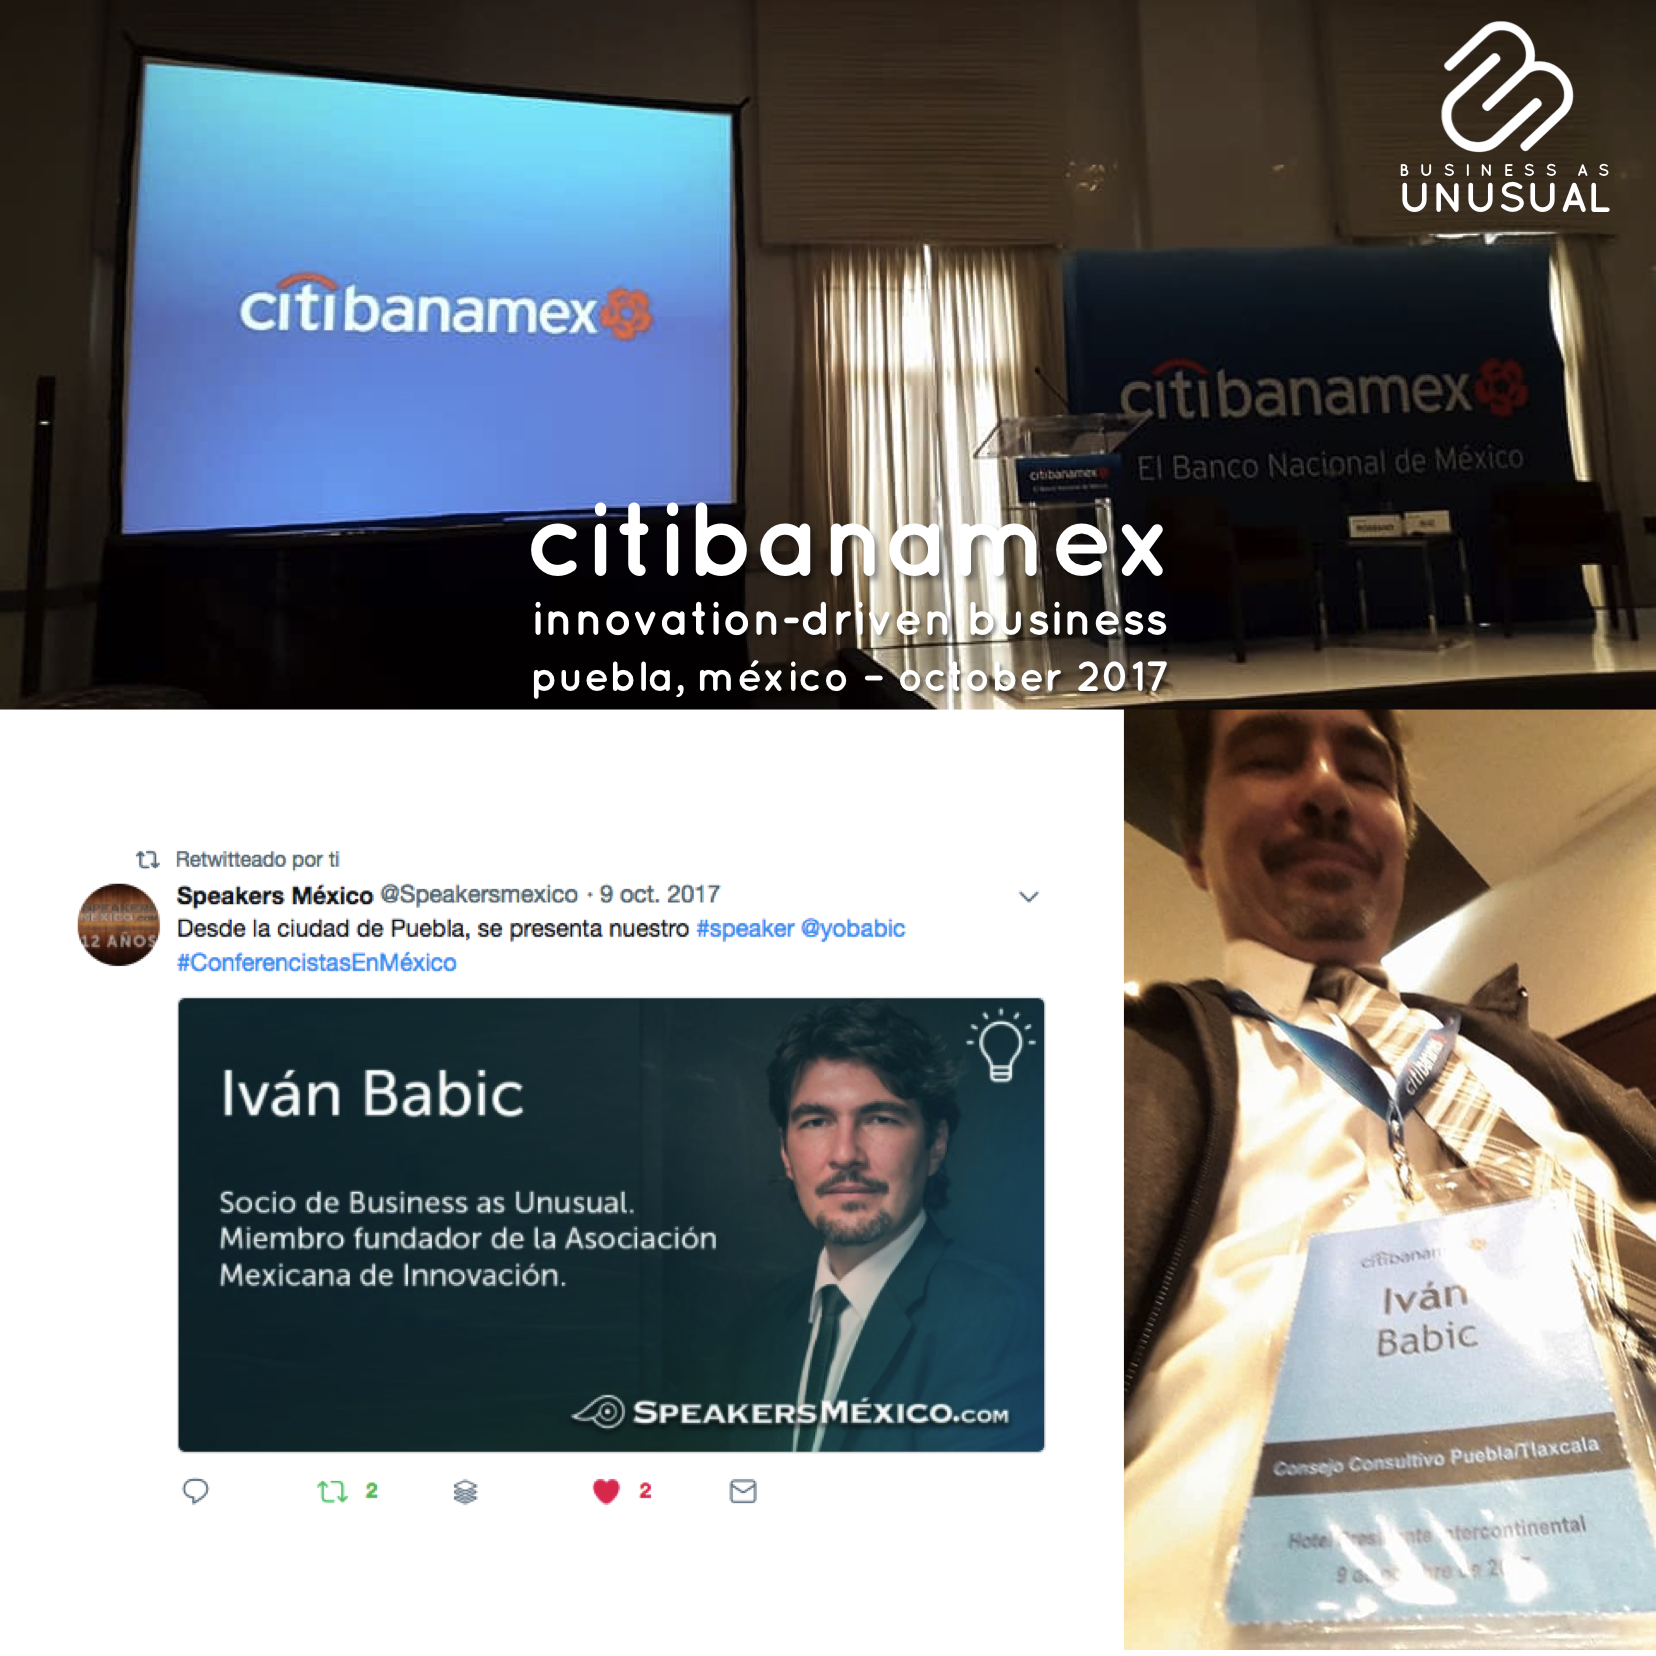 Citibanamex - Innovation-Driven Business - Puebla